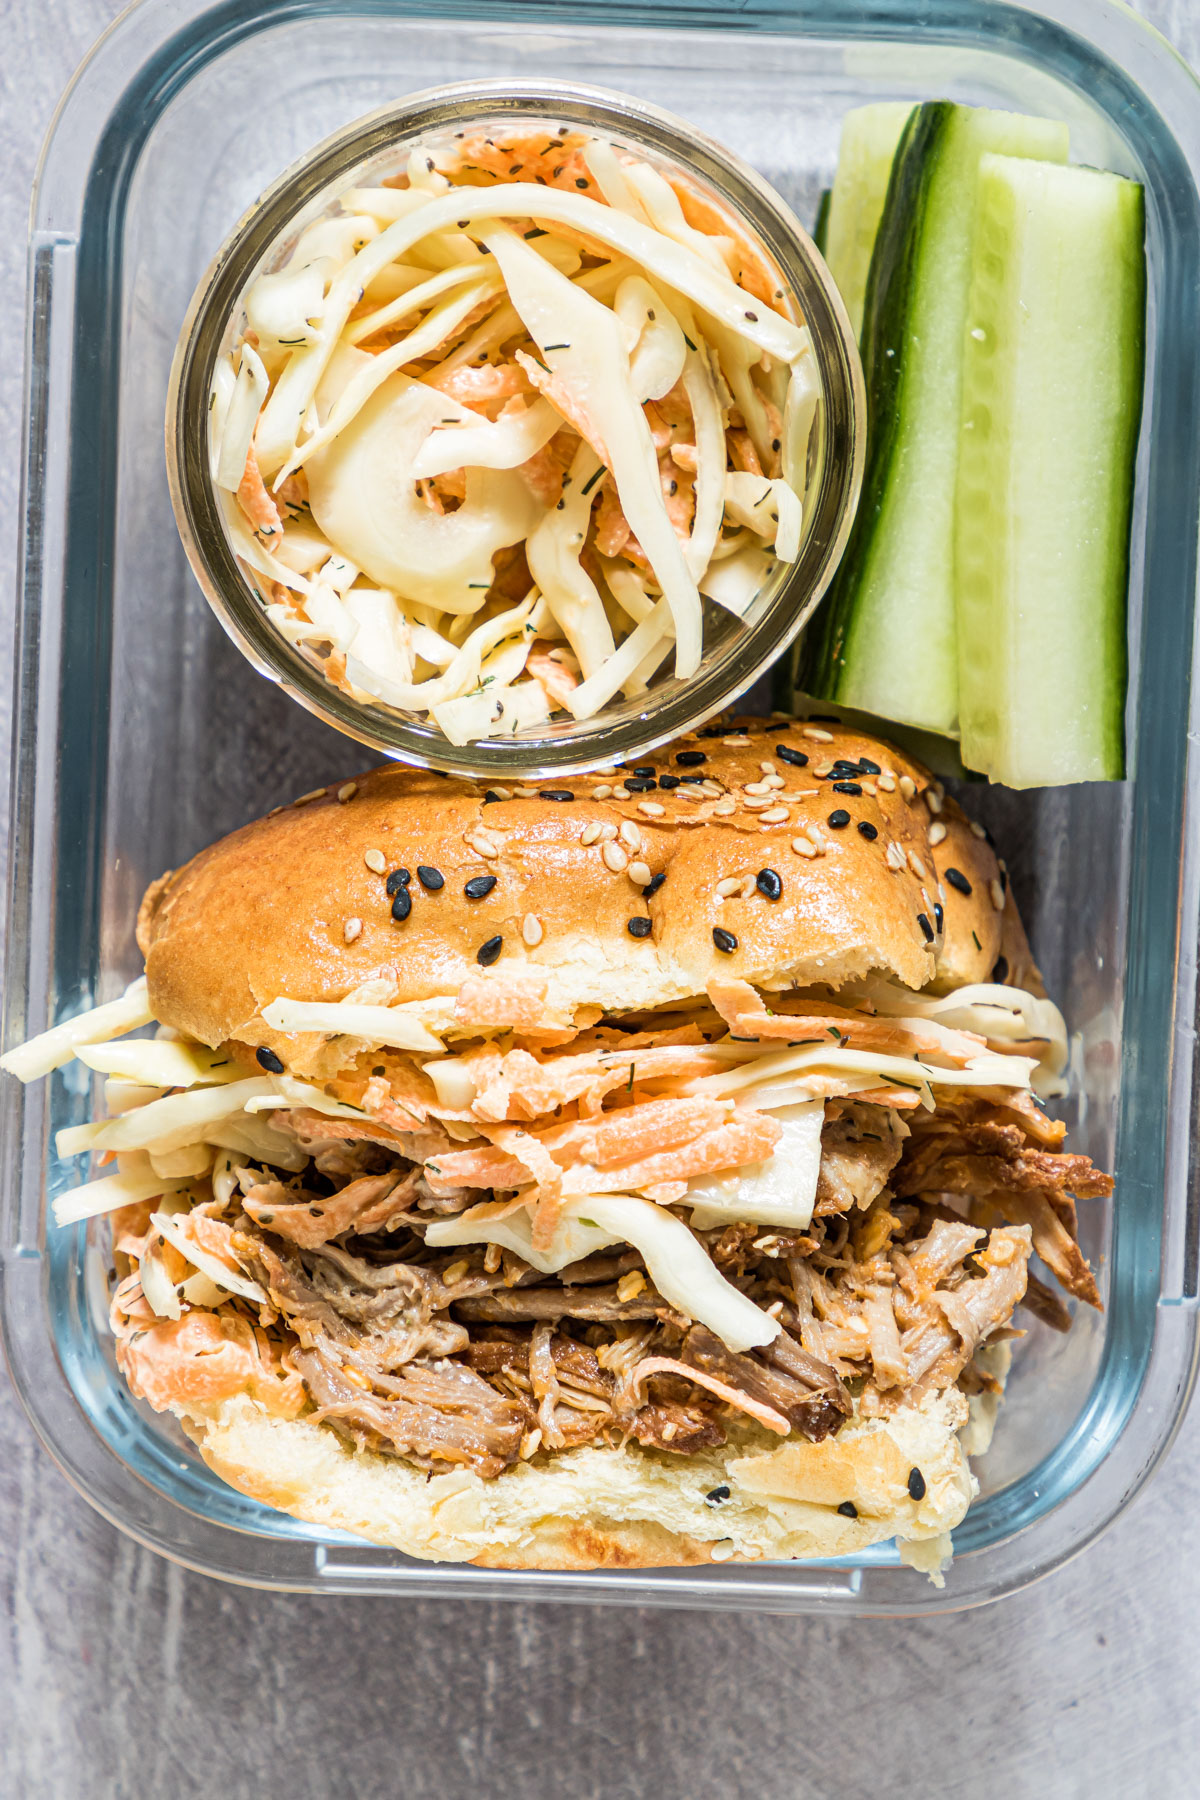 instant pot pulled pork packed in a glass meal prep container with coleslaw and cucumbers